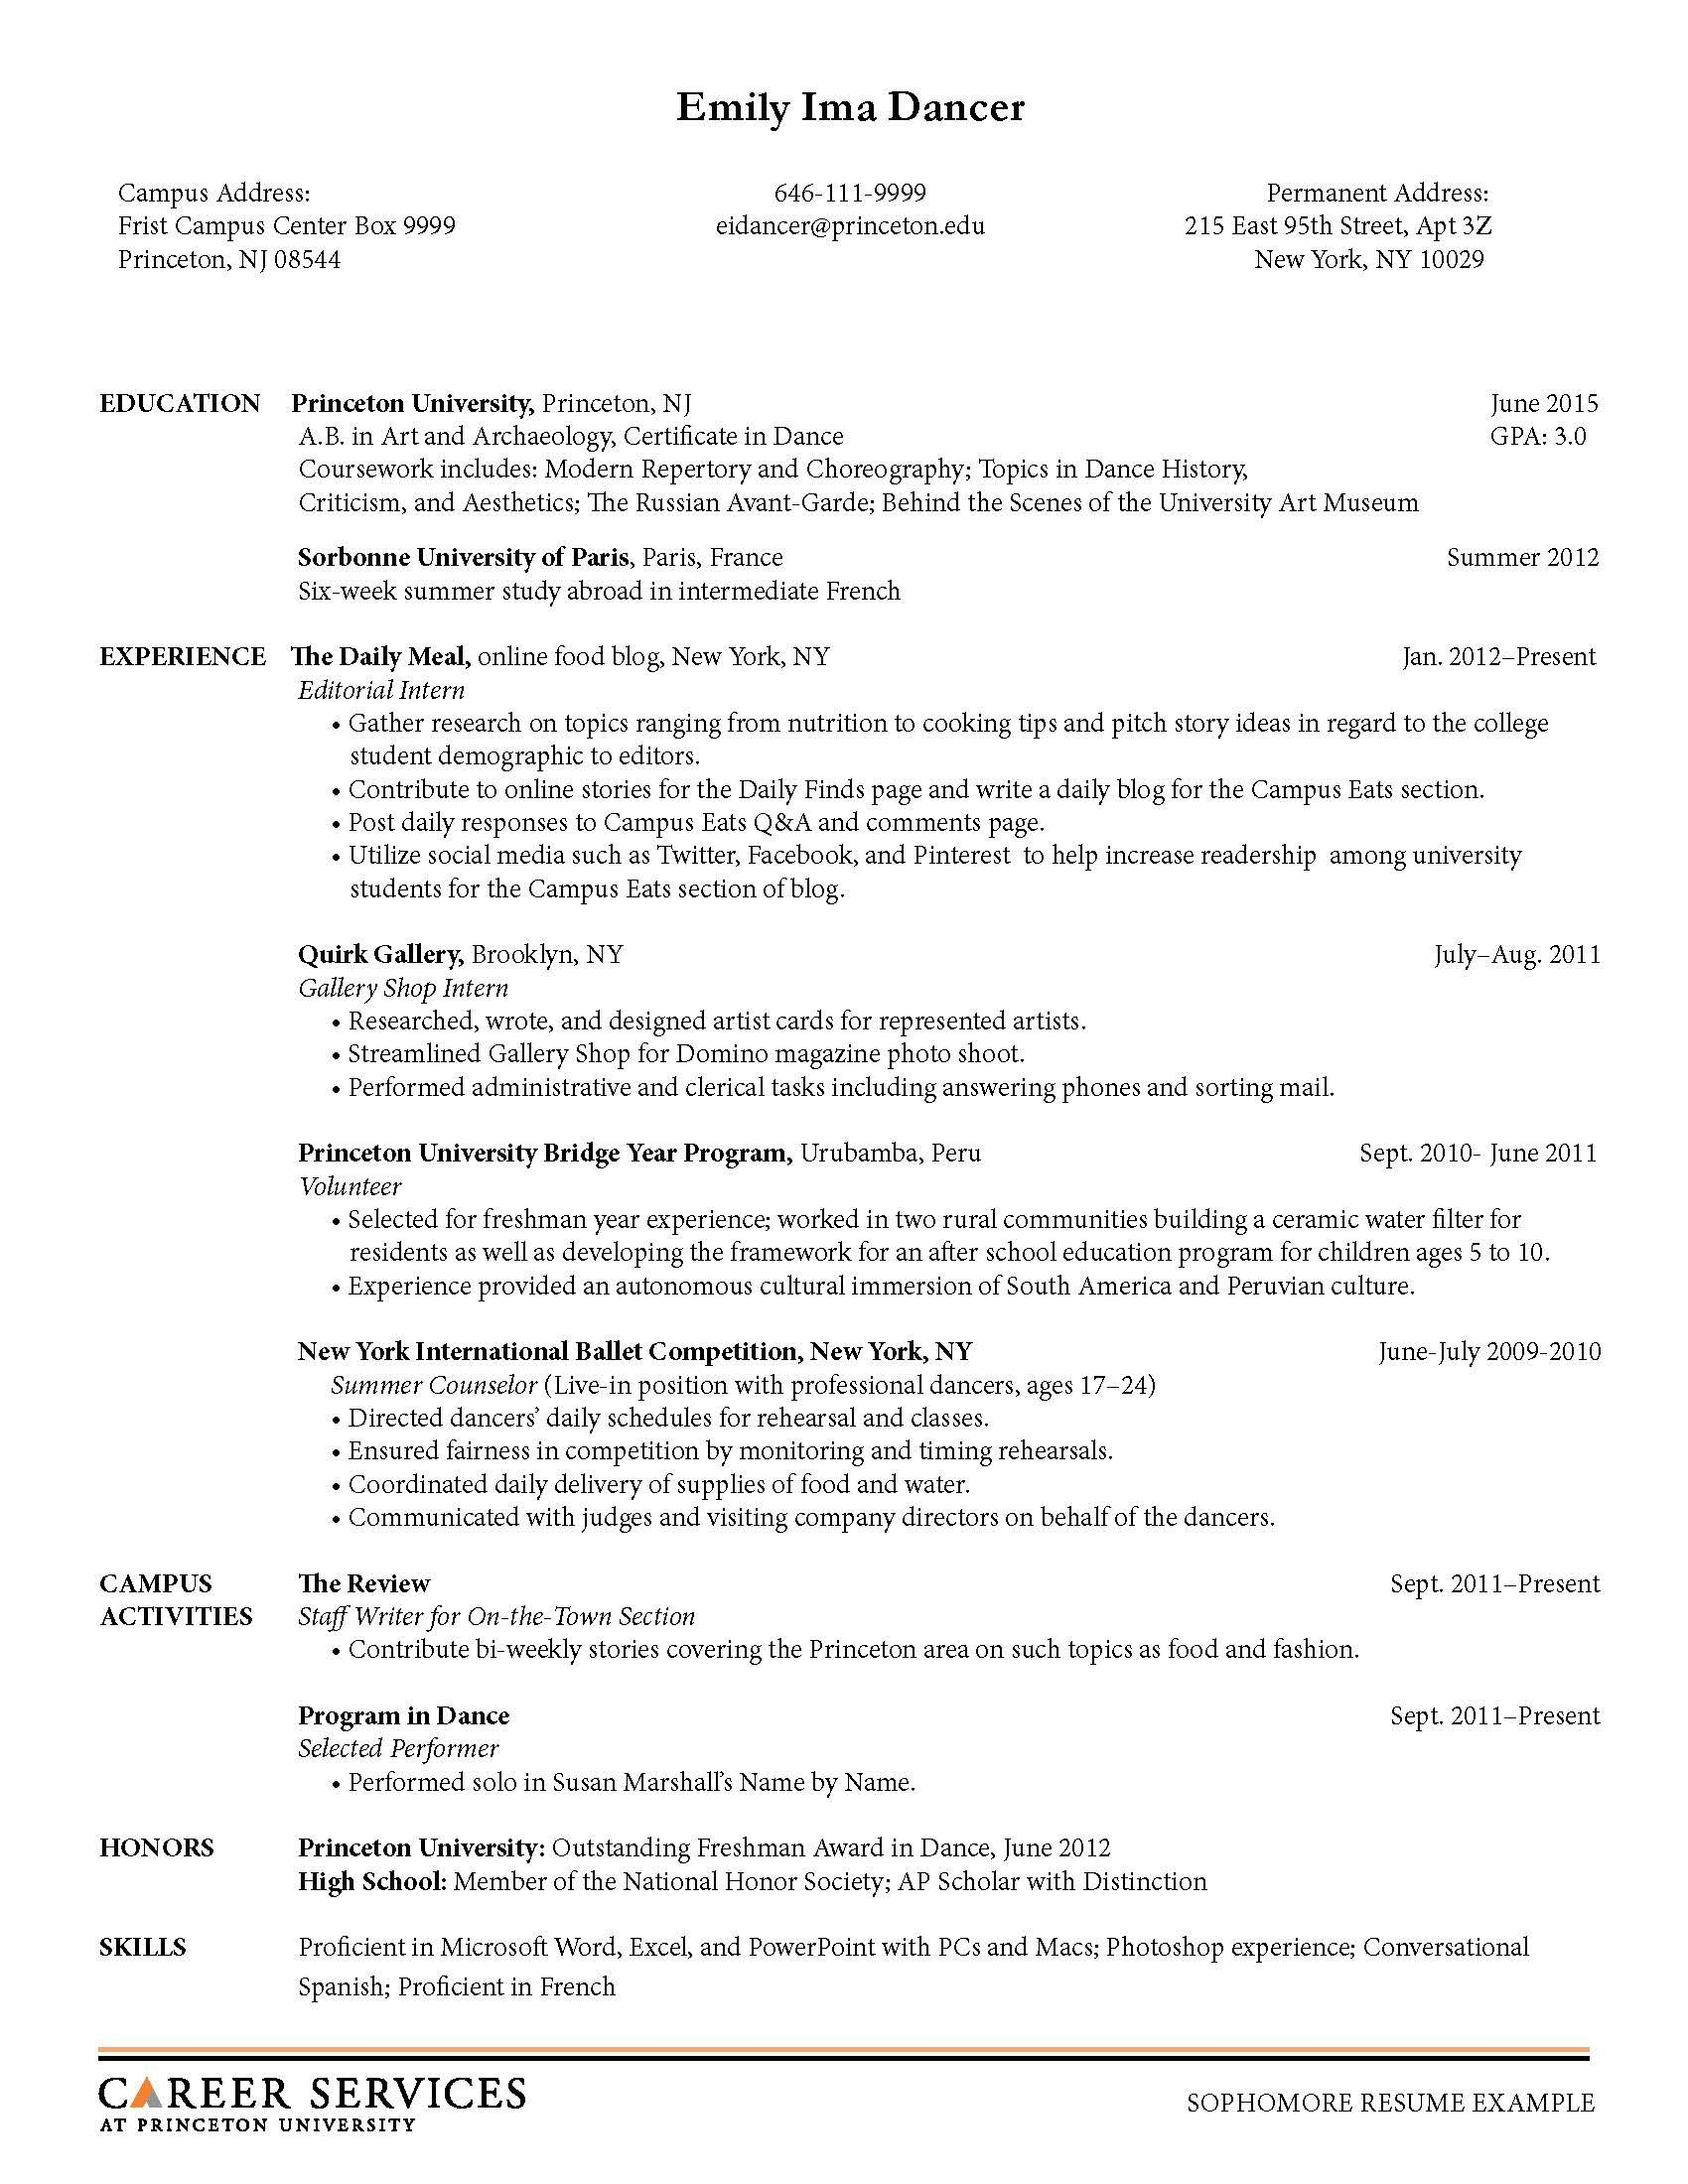 Opposenewapstandardsus  Terrific Sample Resume Resume And Career On Pinterest With Foxy Server Resume Description Besides Clinical Research Coordinator Resume Furthermore Copy And Paste Resume Template With Delectable It Support Resume Also Resume One Page In Addition How To Create A Job Resume And Emailing Cover Letter And Resume As Well As Resume For Sales Position Additionally Resume Ex From Pinterestcom With Opposenewapstandardsus  Foxy Sample Resume Resume And Career On Pinterest With Delectable Server Resume Description Besides Clinical Research Coordinator Resume Furthermore Copy And Paste Resume Template And Terrific It Support Resume Also Resume One Page In Addition How To Create A Job Resume From Pinterestcom